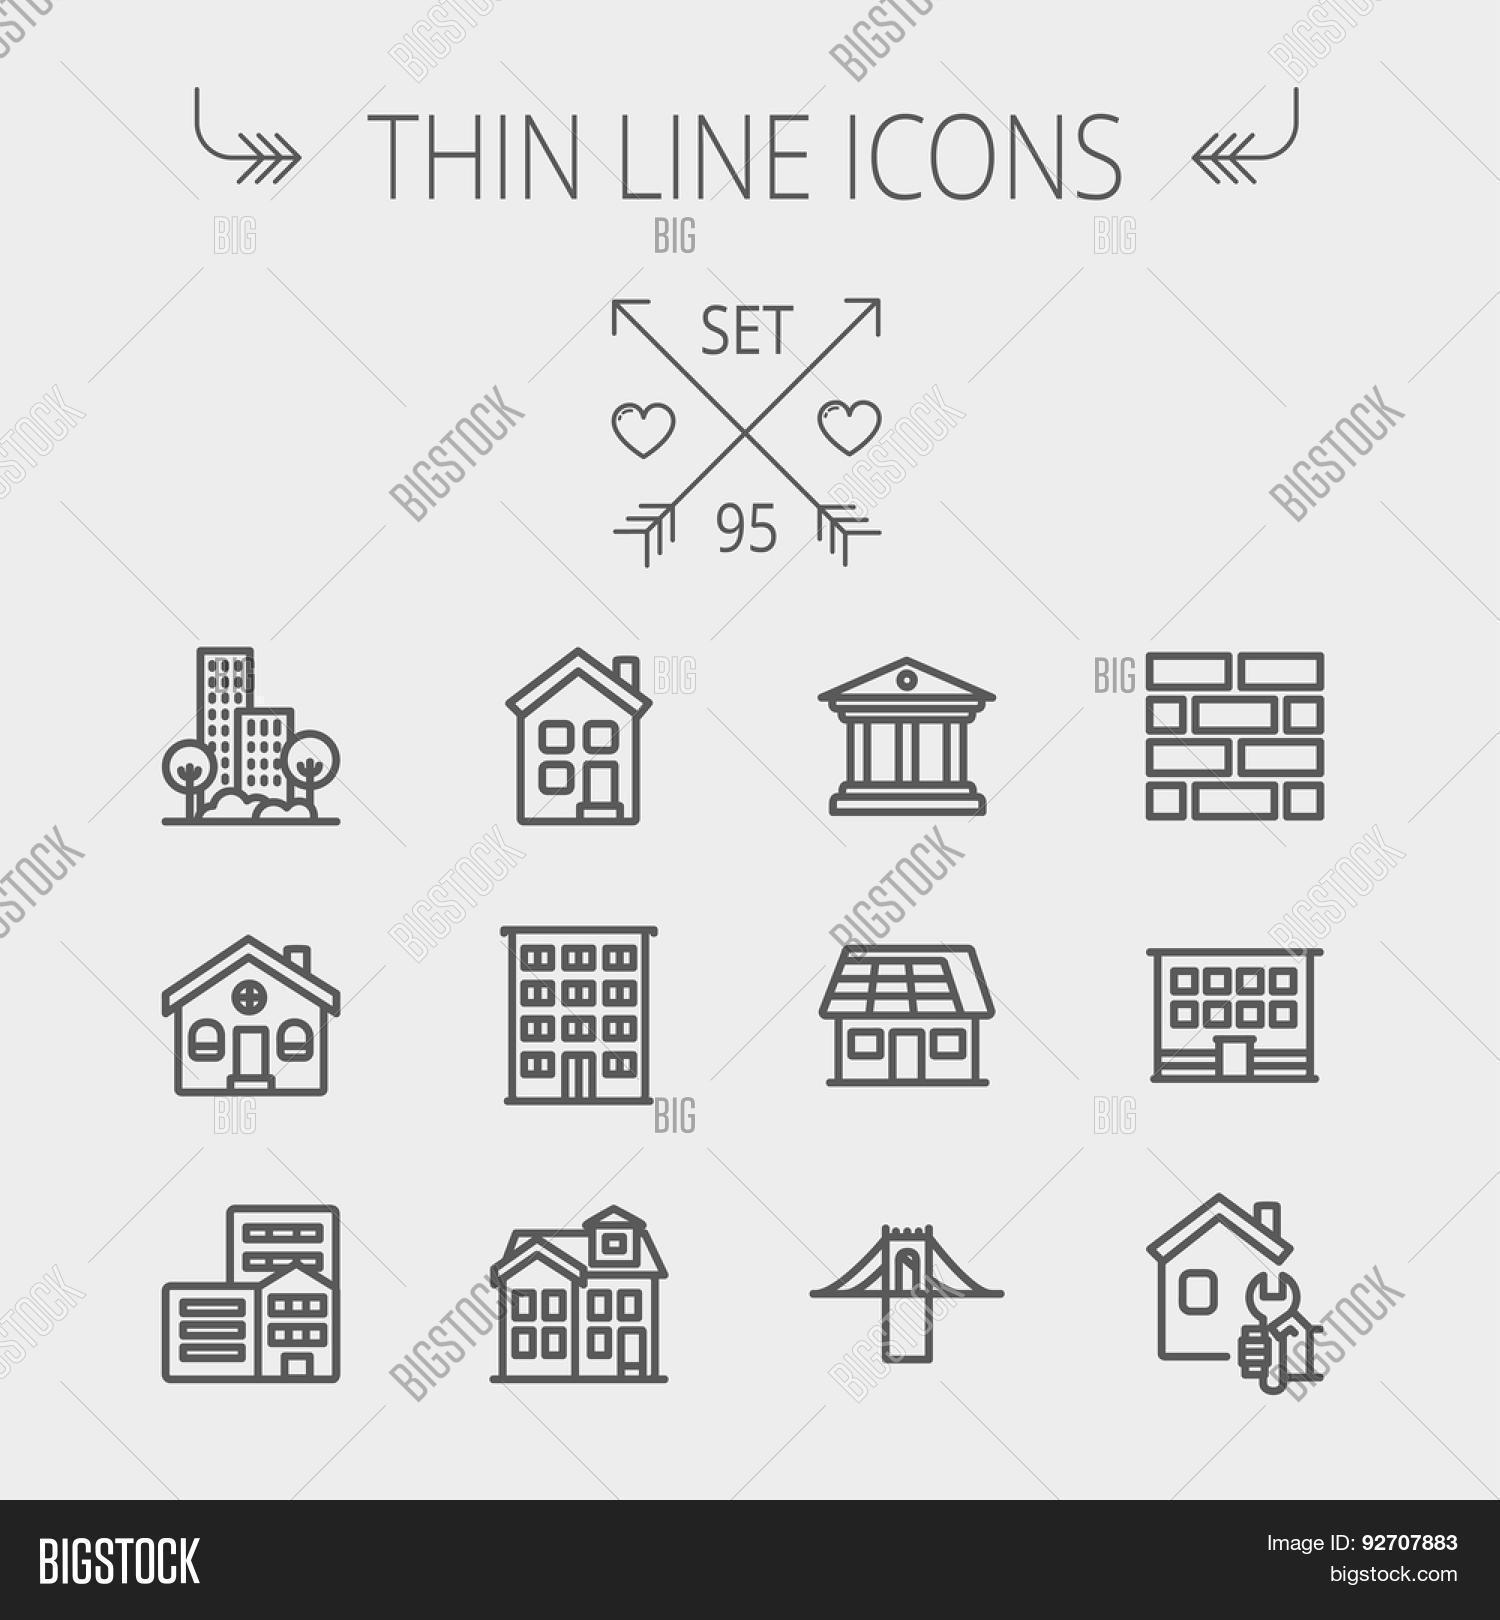 Construction Thin Line Icon Set For Web And Mobile Includes